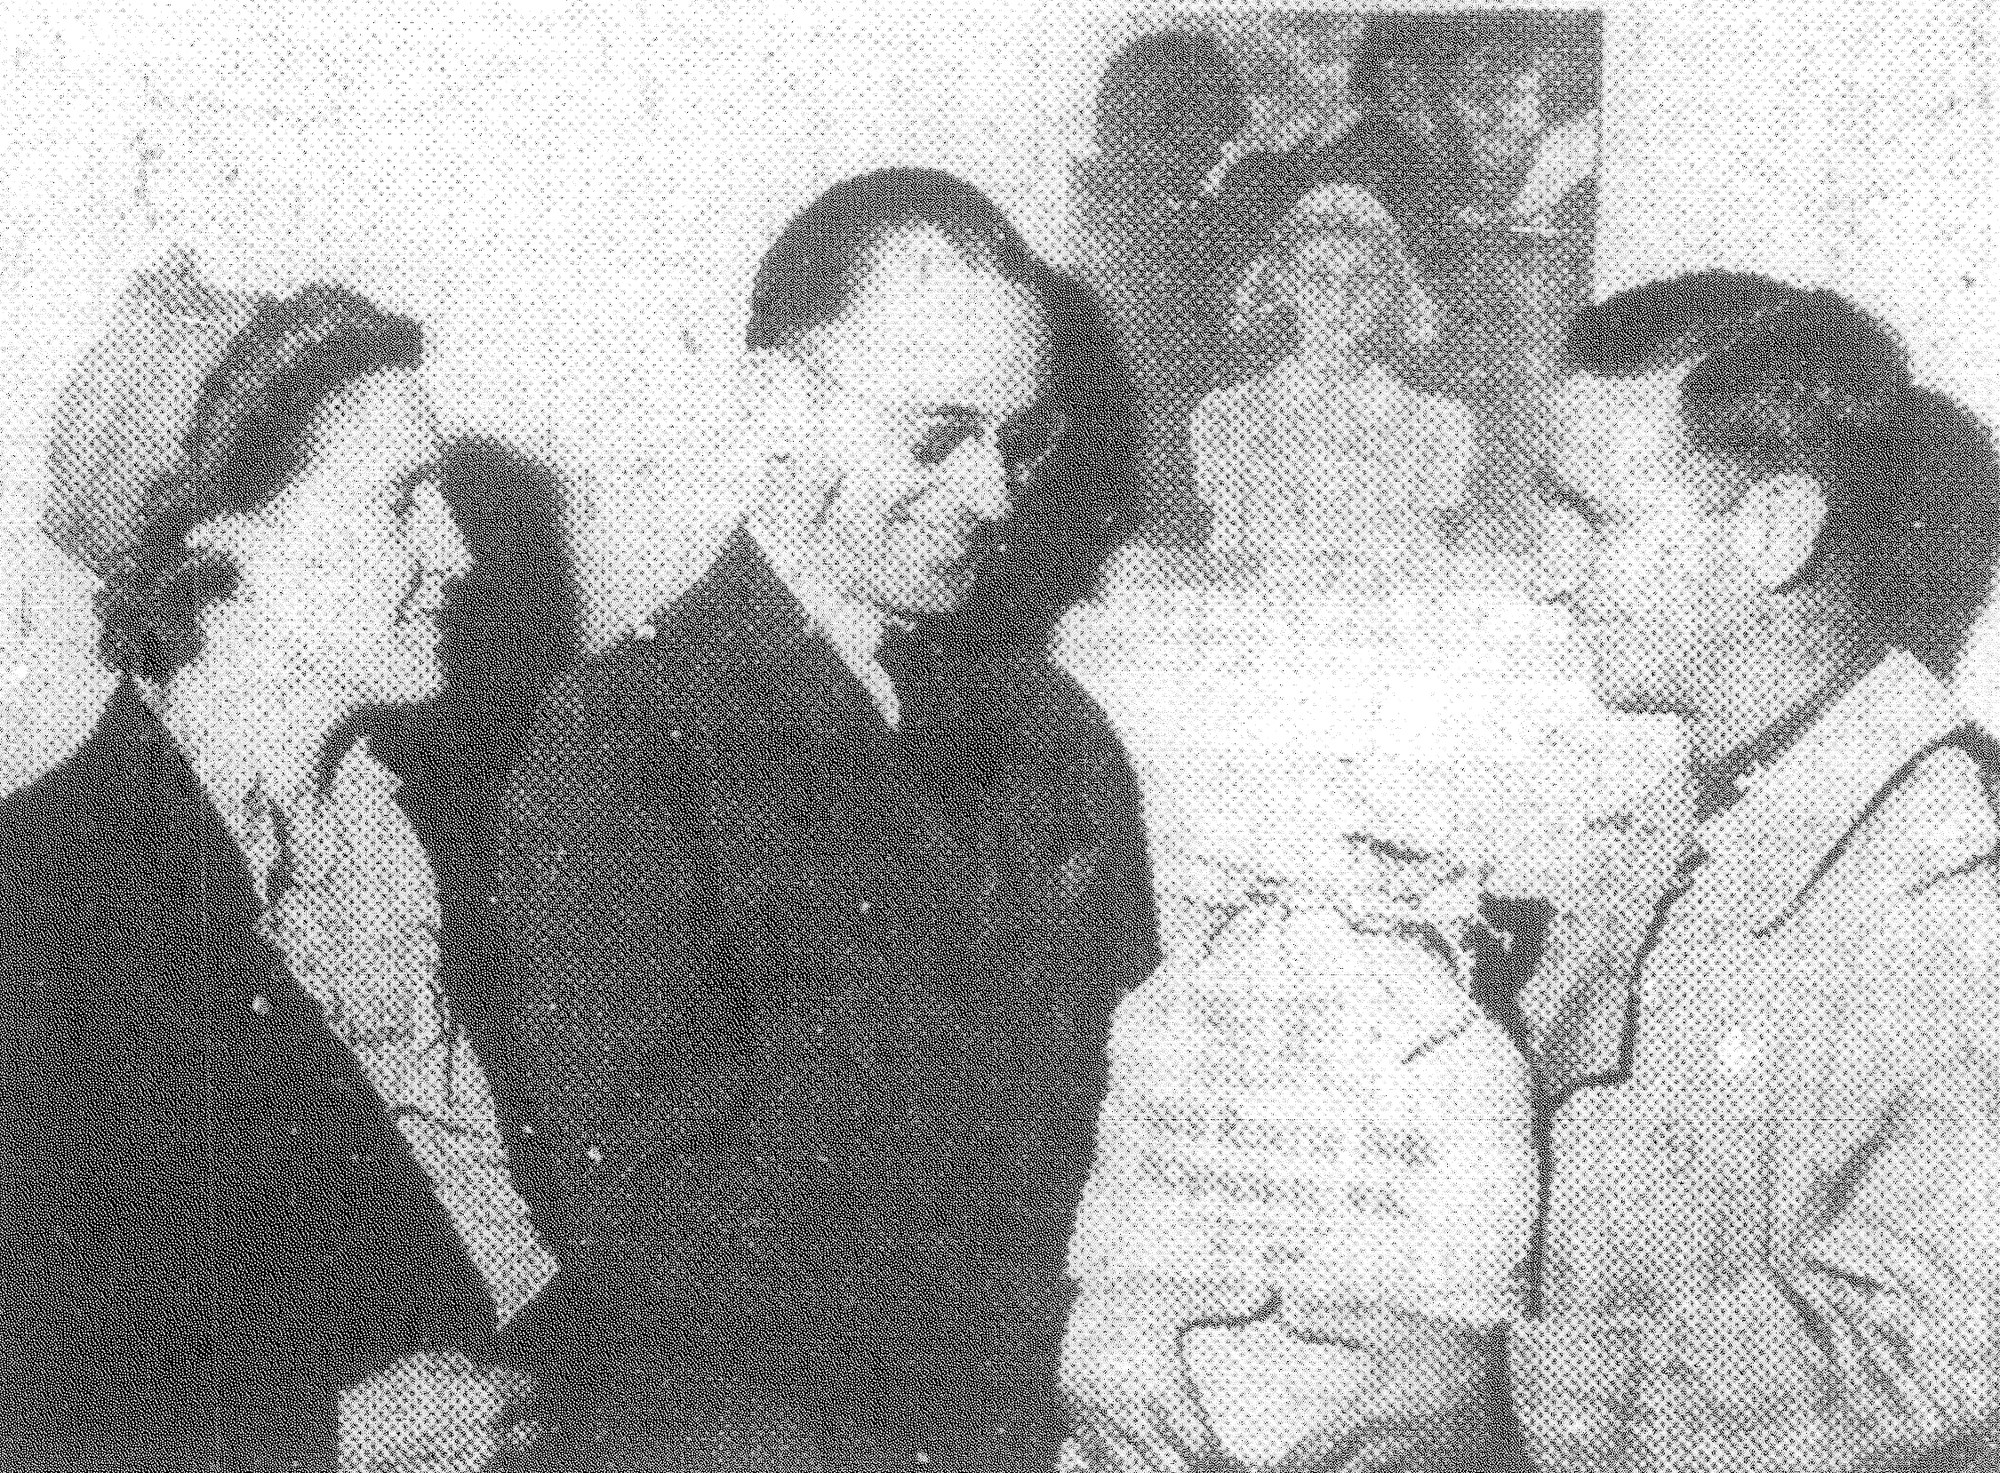 1943 - Lt. E.C. Walsh Jr., personal affair officer at Shaw Field, presents a money bag totaling $4,855.25 donated by soldiers and civilians at the air base to J. Clark Hughes, director of the Sumter Community and War Chest Fund, while Mrs. Bessie Boykin, executive secretary of the fund, looks on.